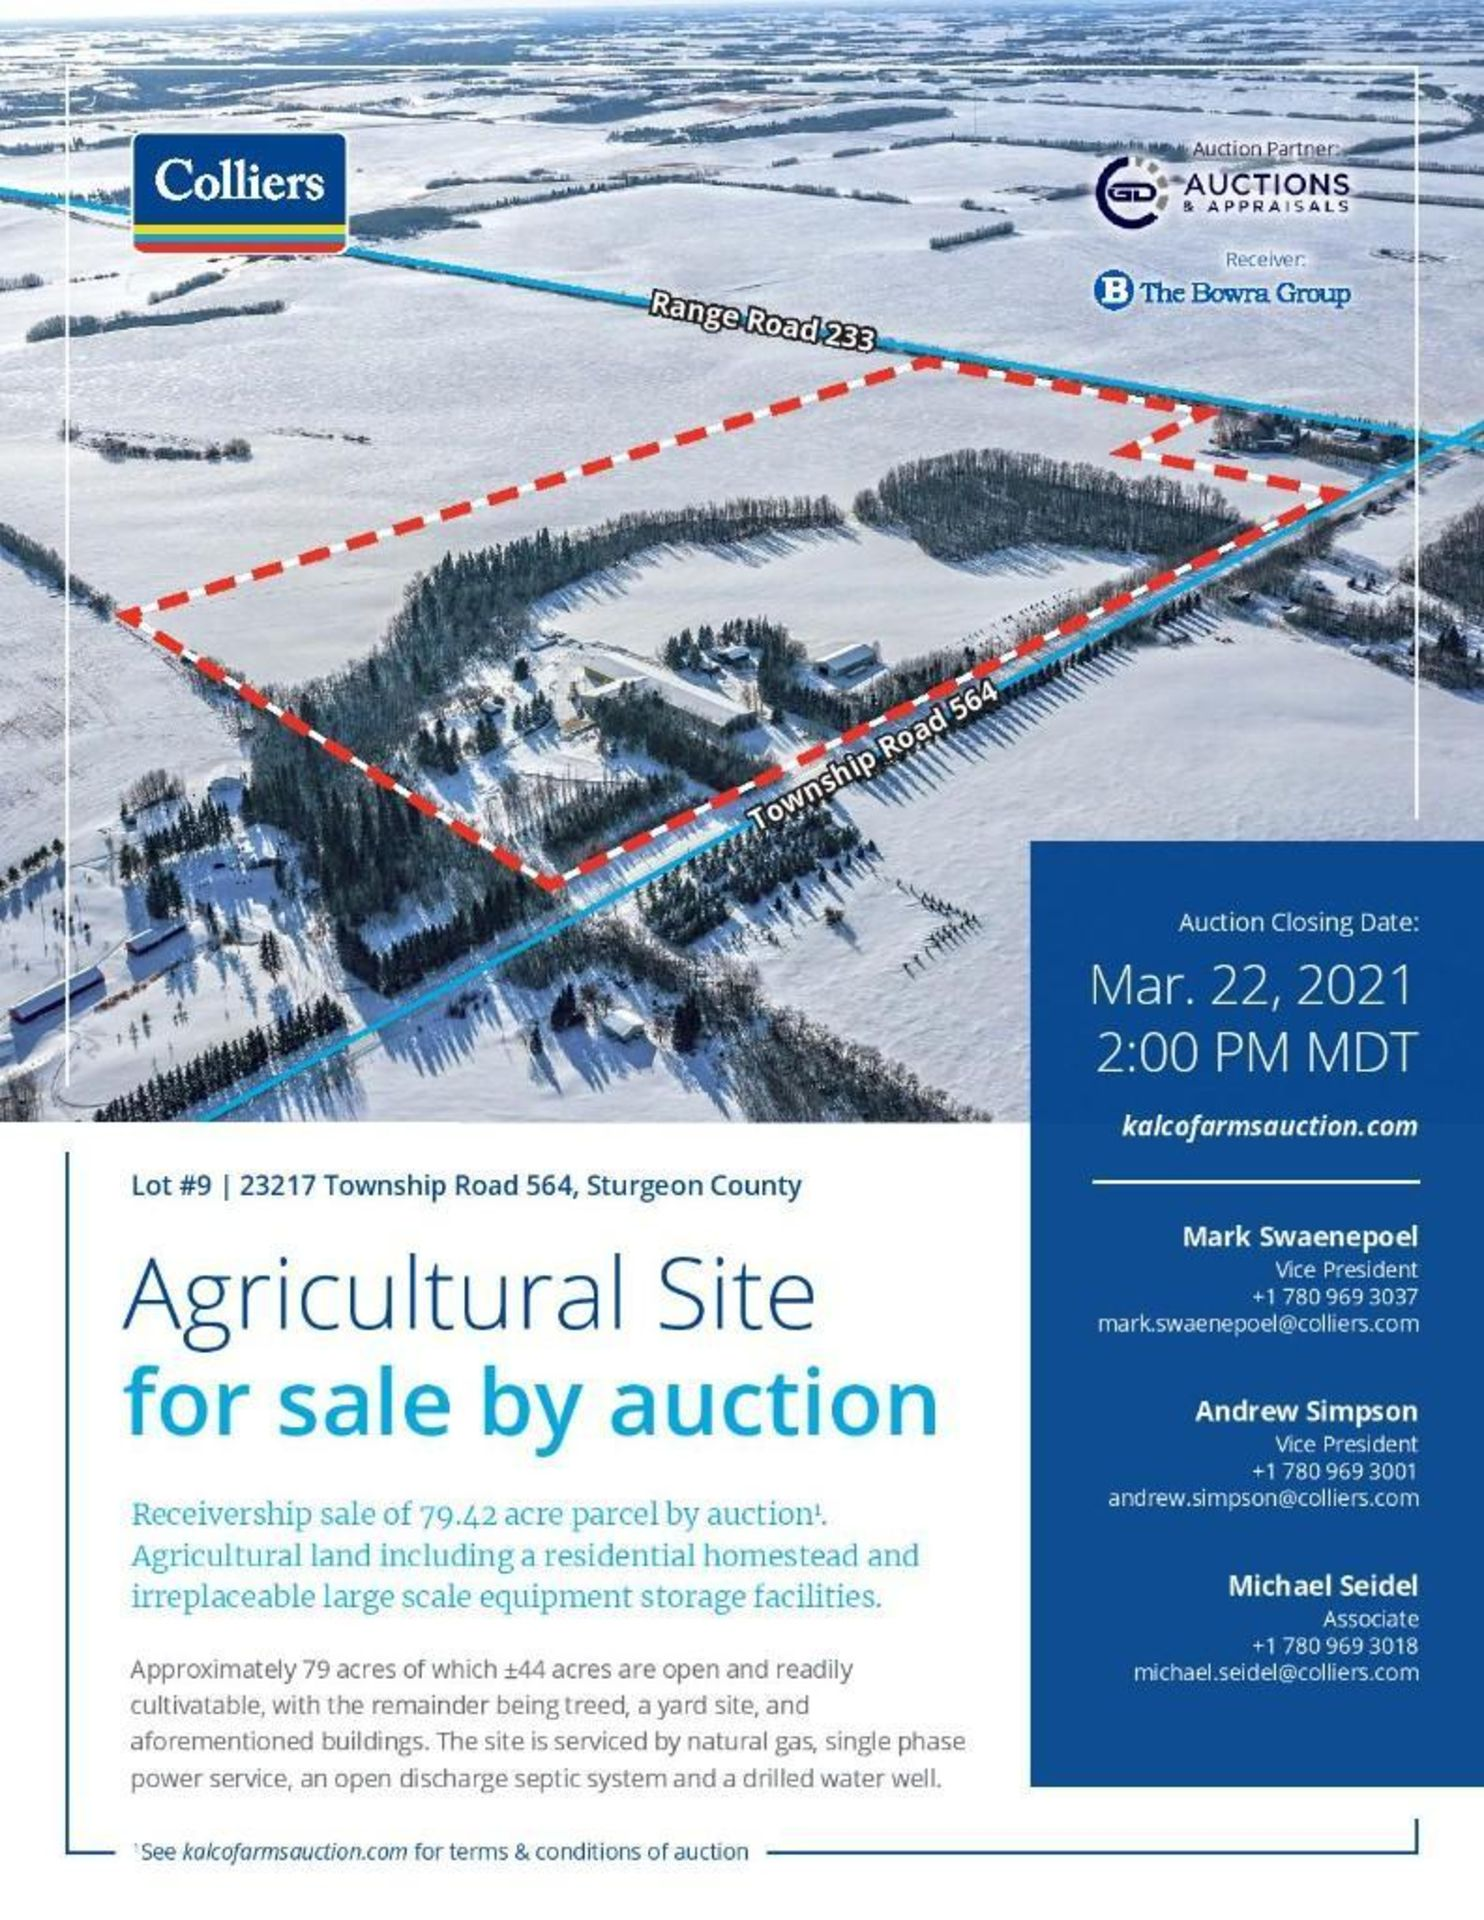 Lands and Property located at Civic Address 23217 Township Road 564, Sturgeon County. - Image 2 of 9